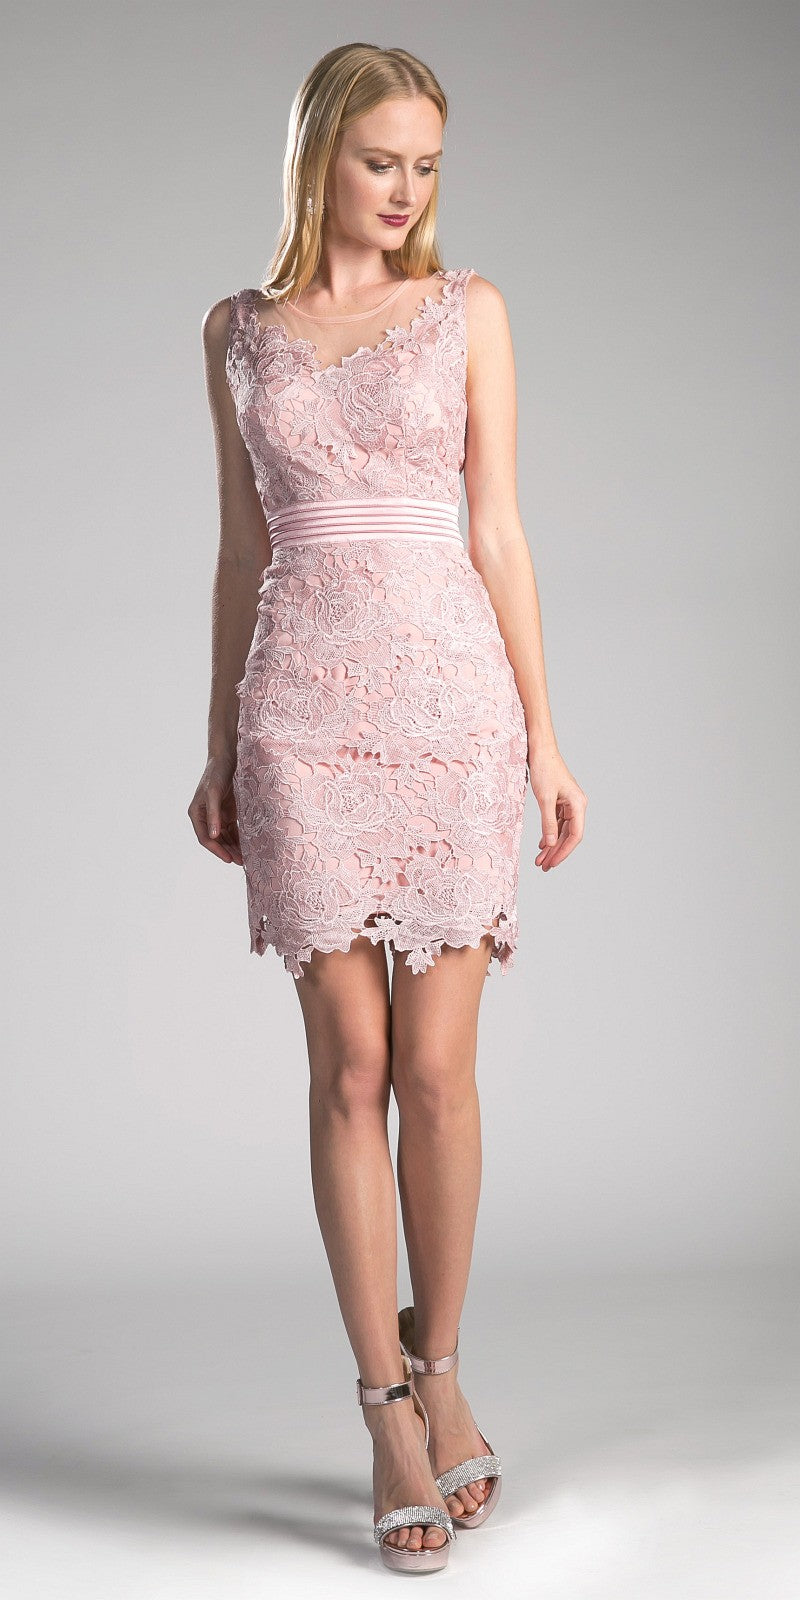 b486f133758 Cinderella Divine CF053 Sleeveless Lace Overlay Blush Cocktail Dress Short  ...